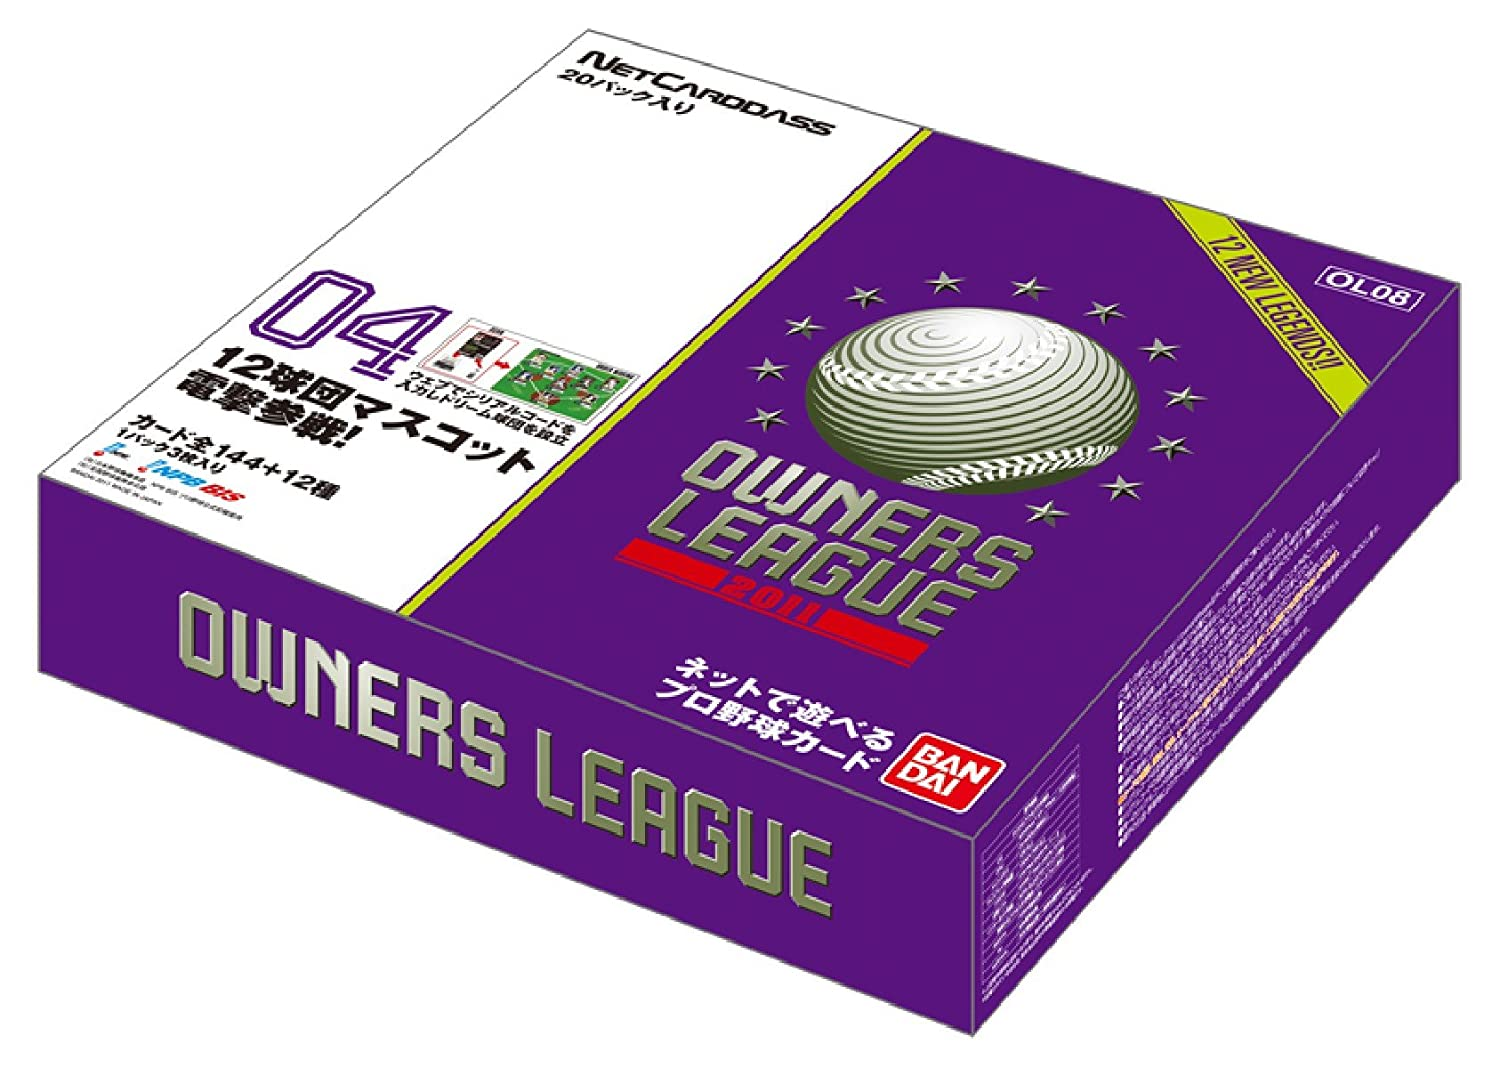 [OL08] 2011 04 professional baseball owners league OWNERS DRAFT booster BOX (japan import)